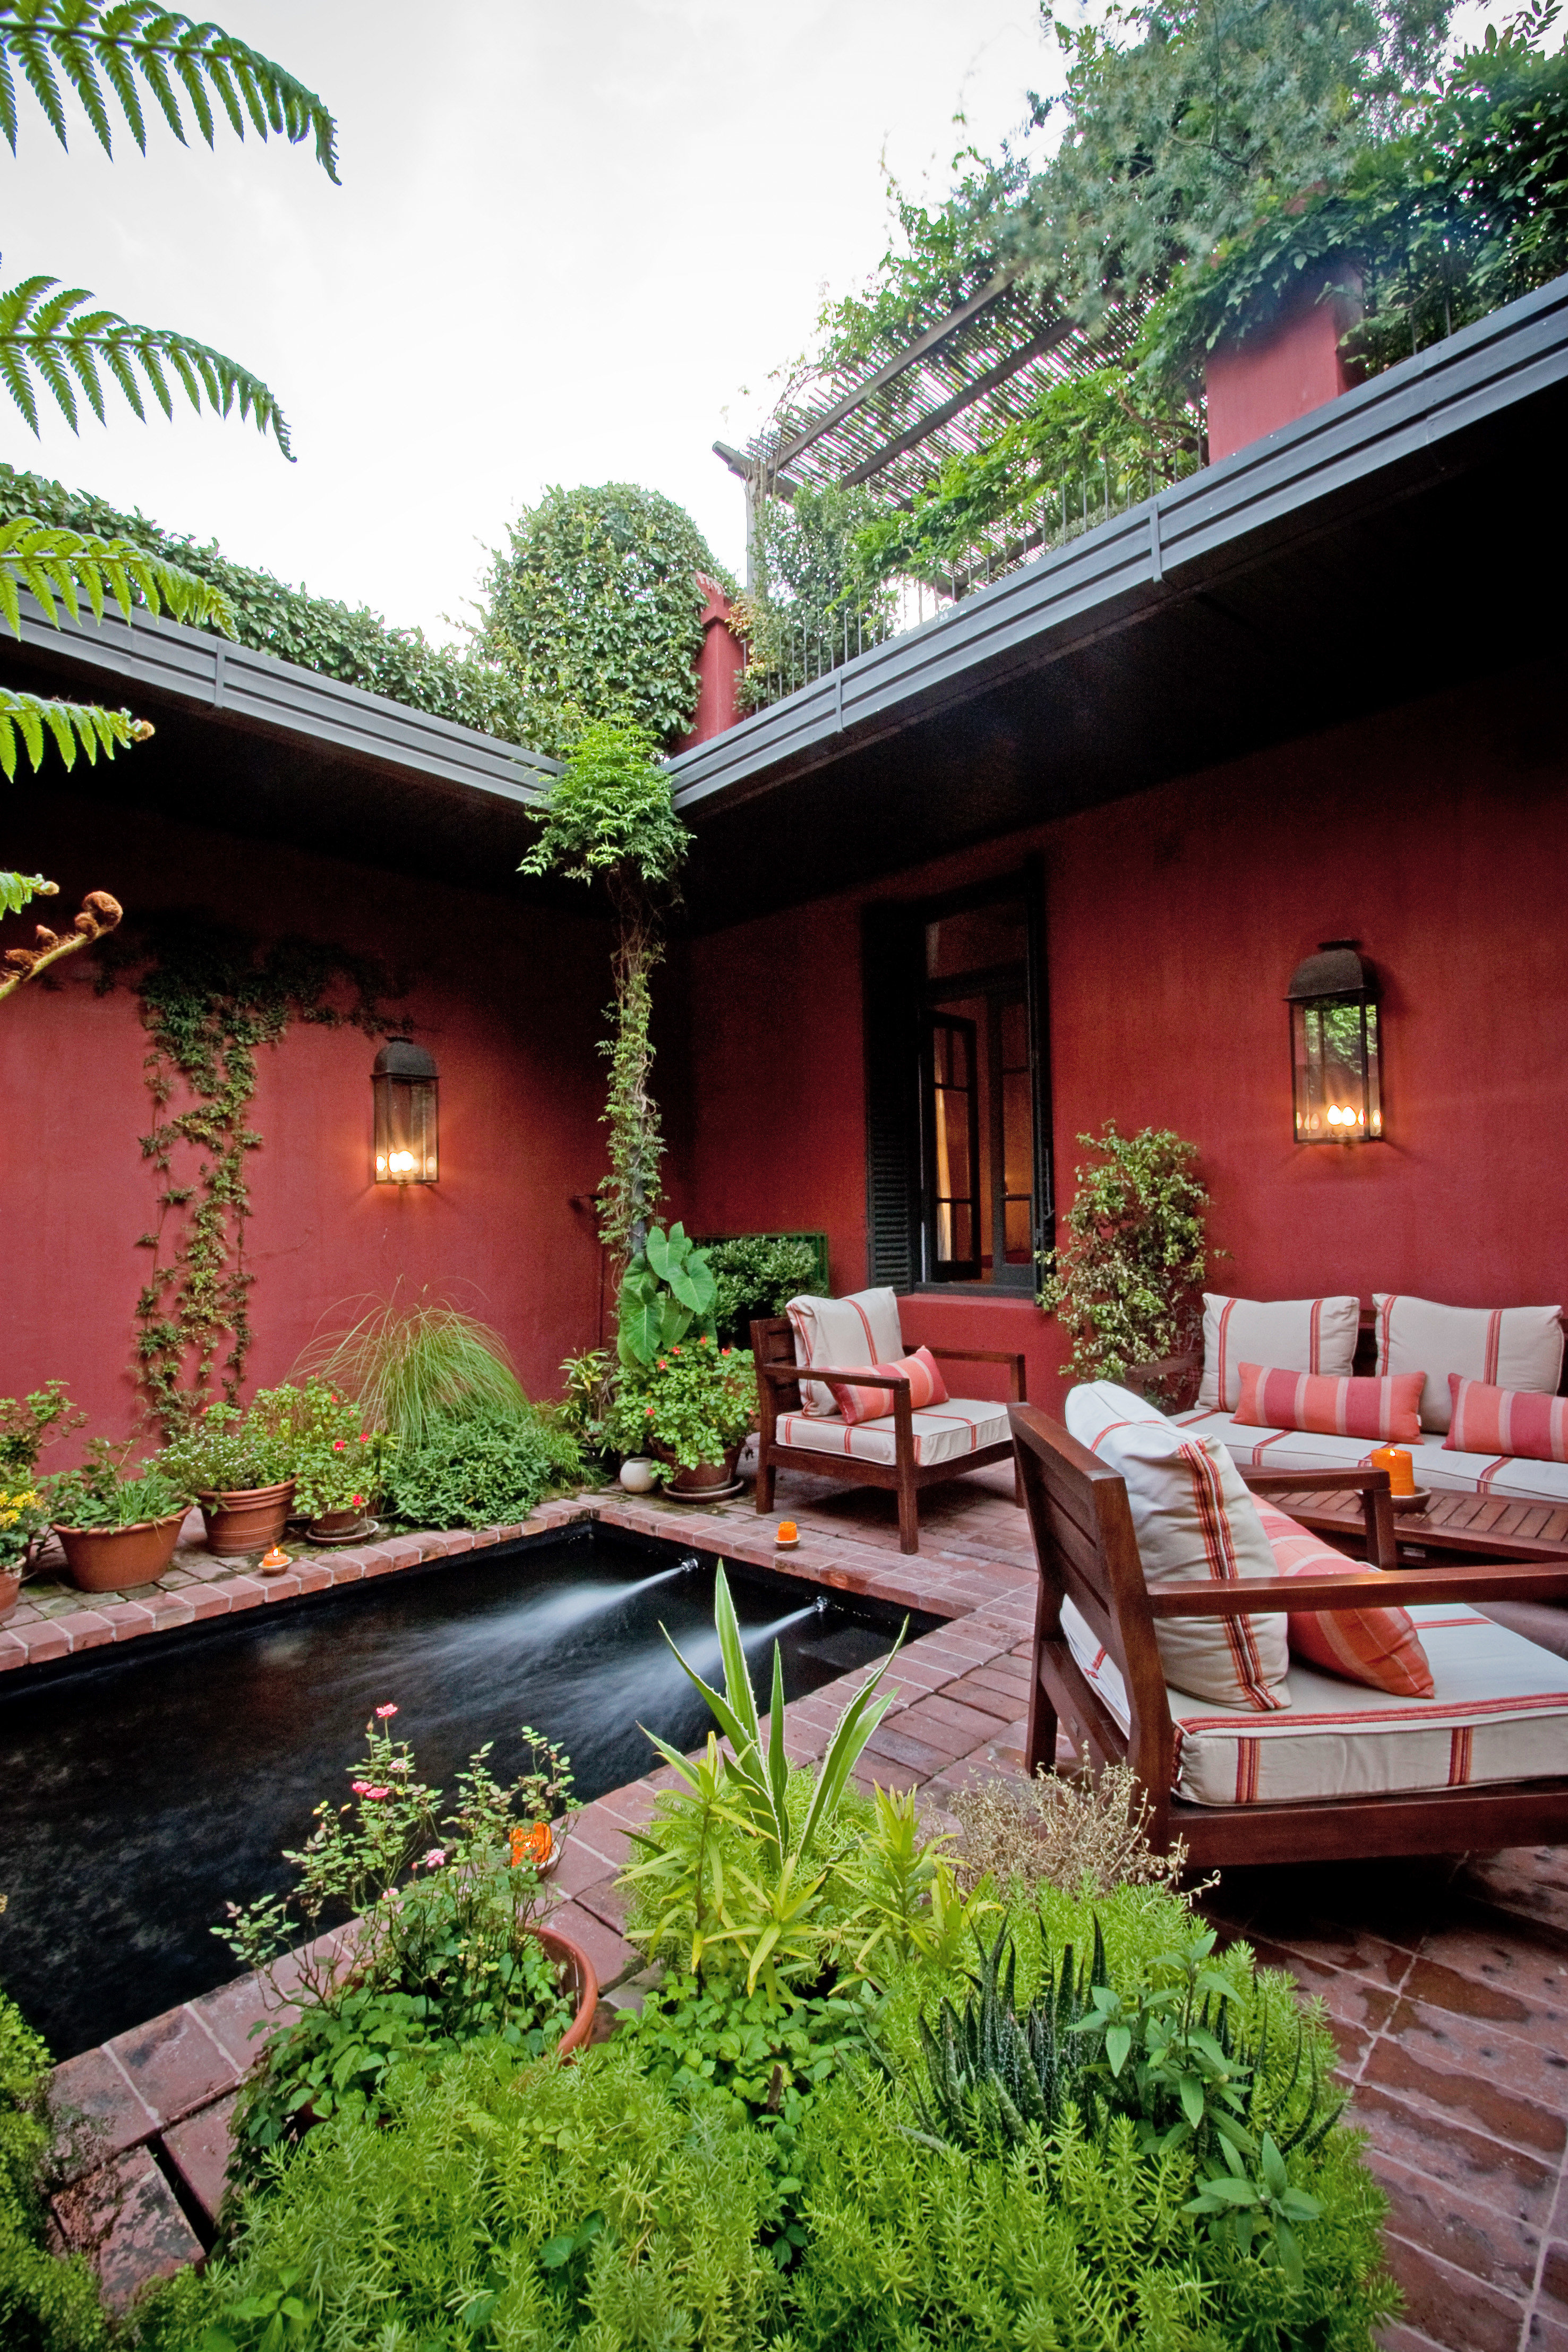 Architecture Grounds Lounge Play Pool tree house property backyard plant Courtyard home flower yard Garden cottage Resort outdoor structure Villa